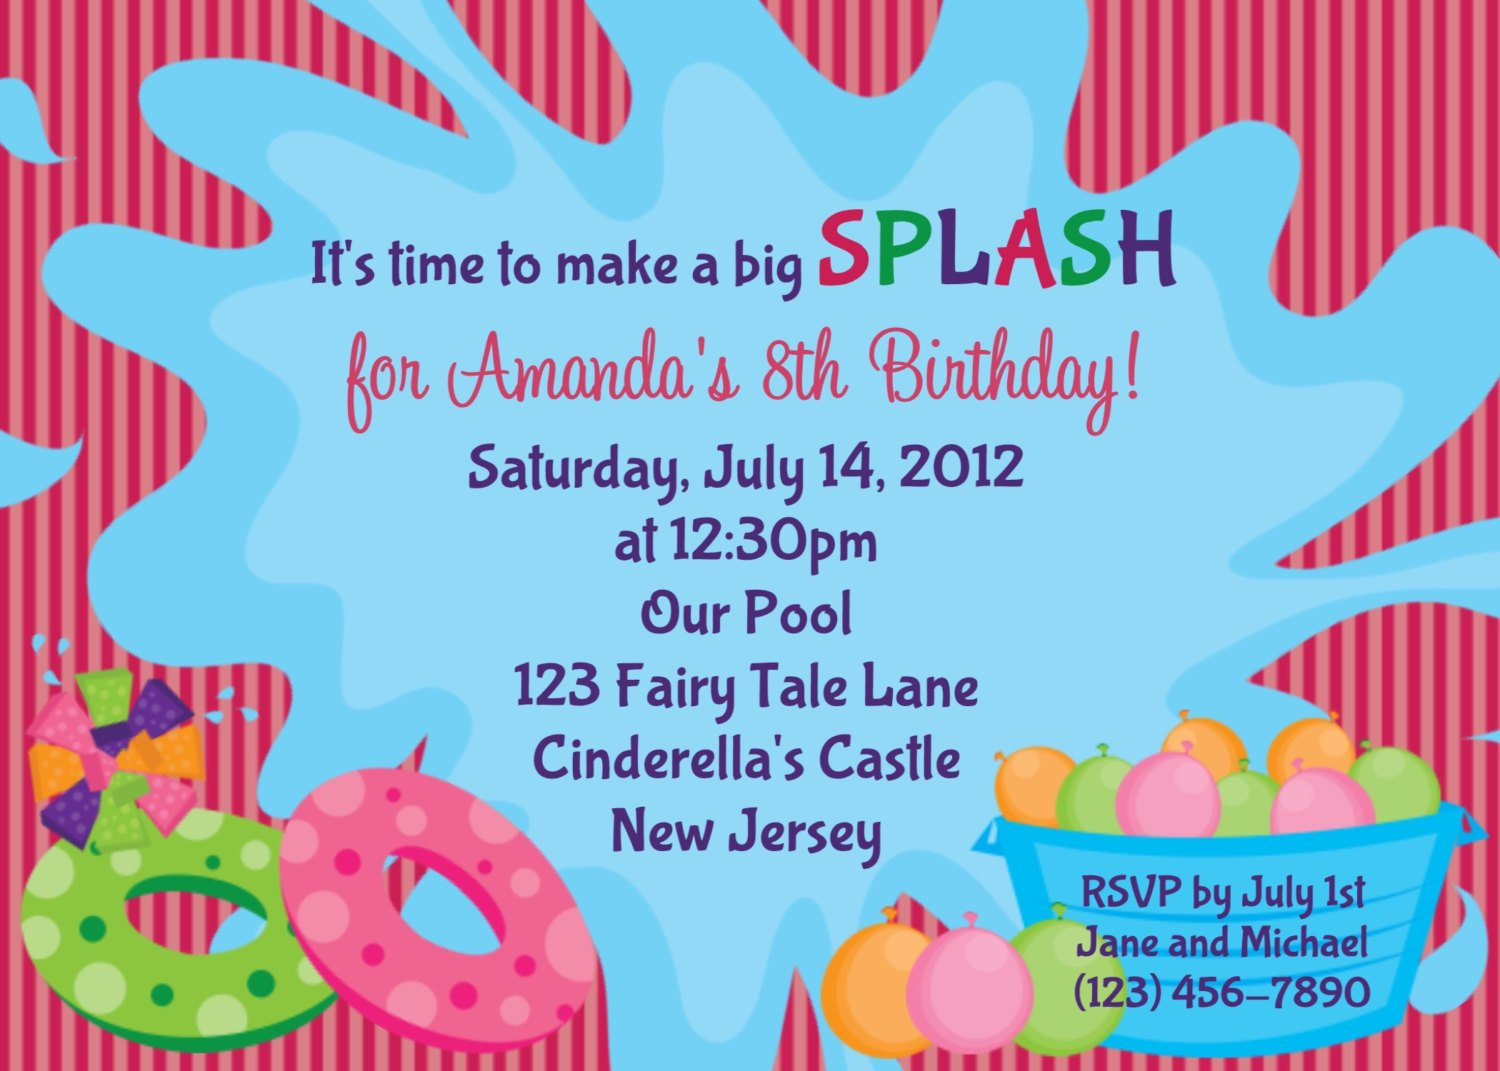 Pool Party Birthday Party Invitations Templates Free Download – Birthday Pool Party Invitation